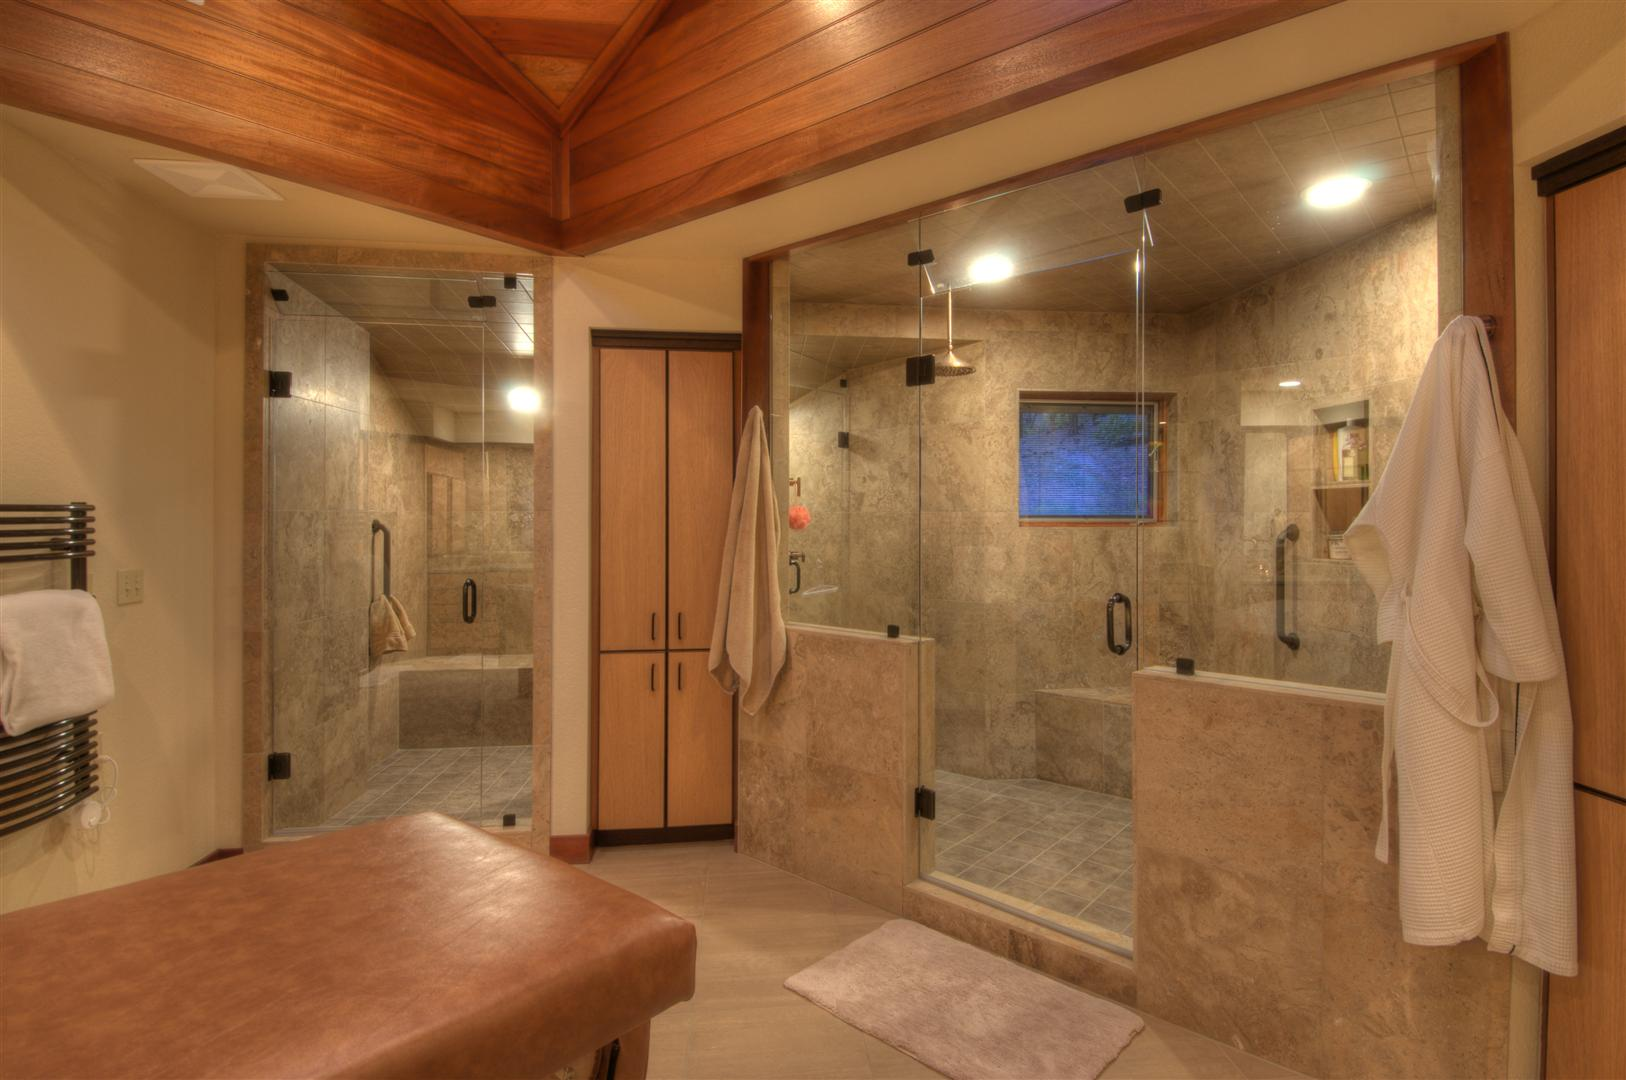 Elegant Shower Ideas for Master Bathroom   HomesFeed awesome shower ideas for master bathroom with double glass walk in shower  with adorable wall and